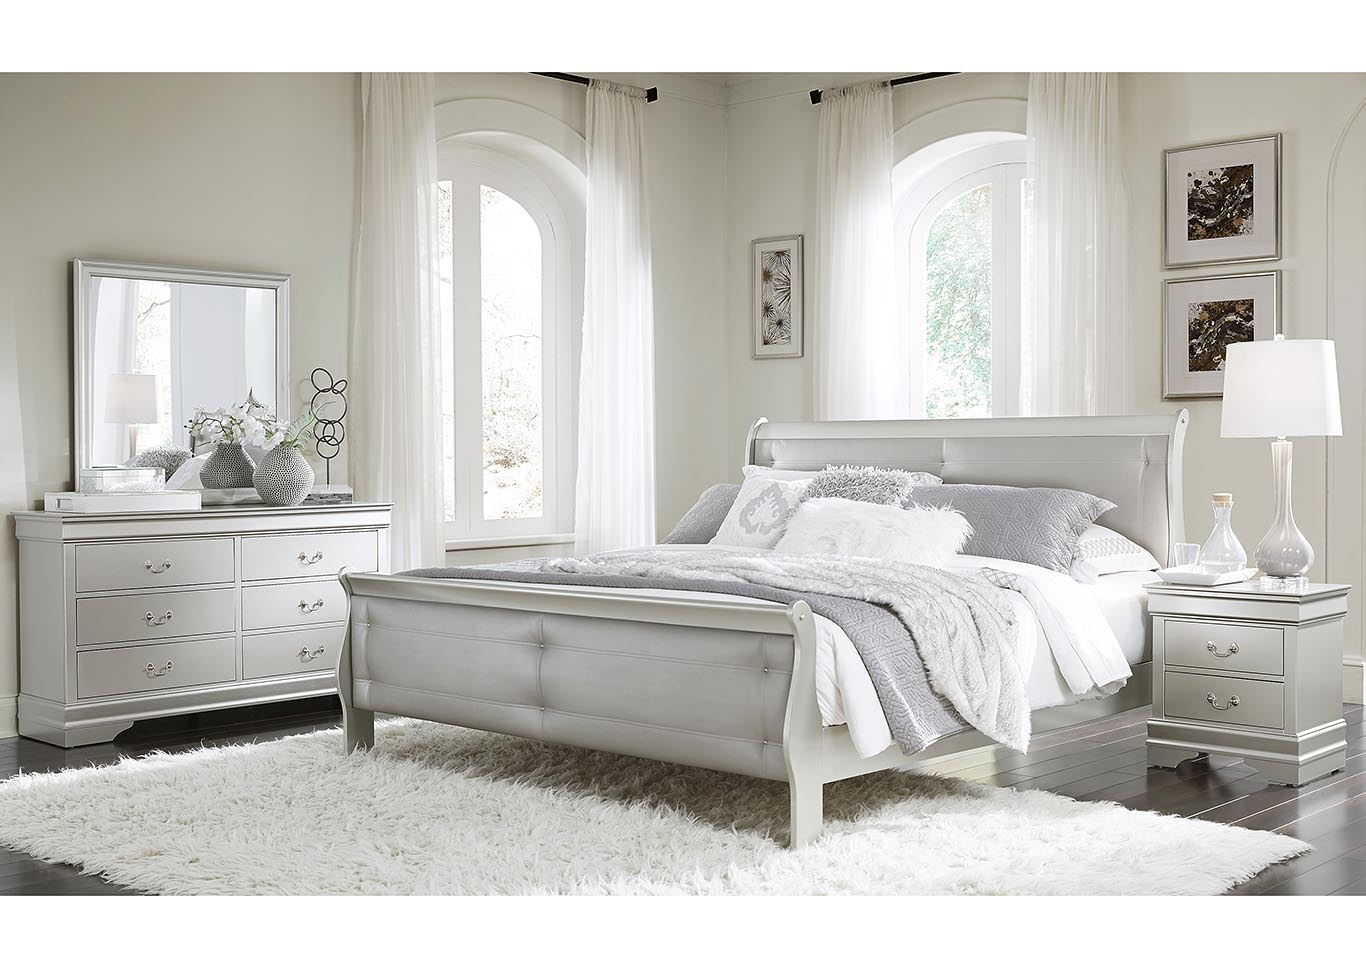 Marley Silver Full Upholstery Panel Bed w/Dresser and Mirror,Global Furniture USA